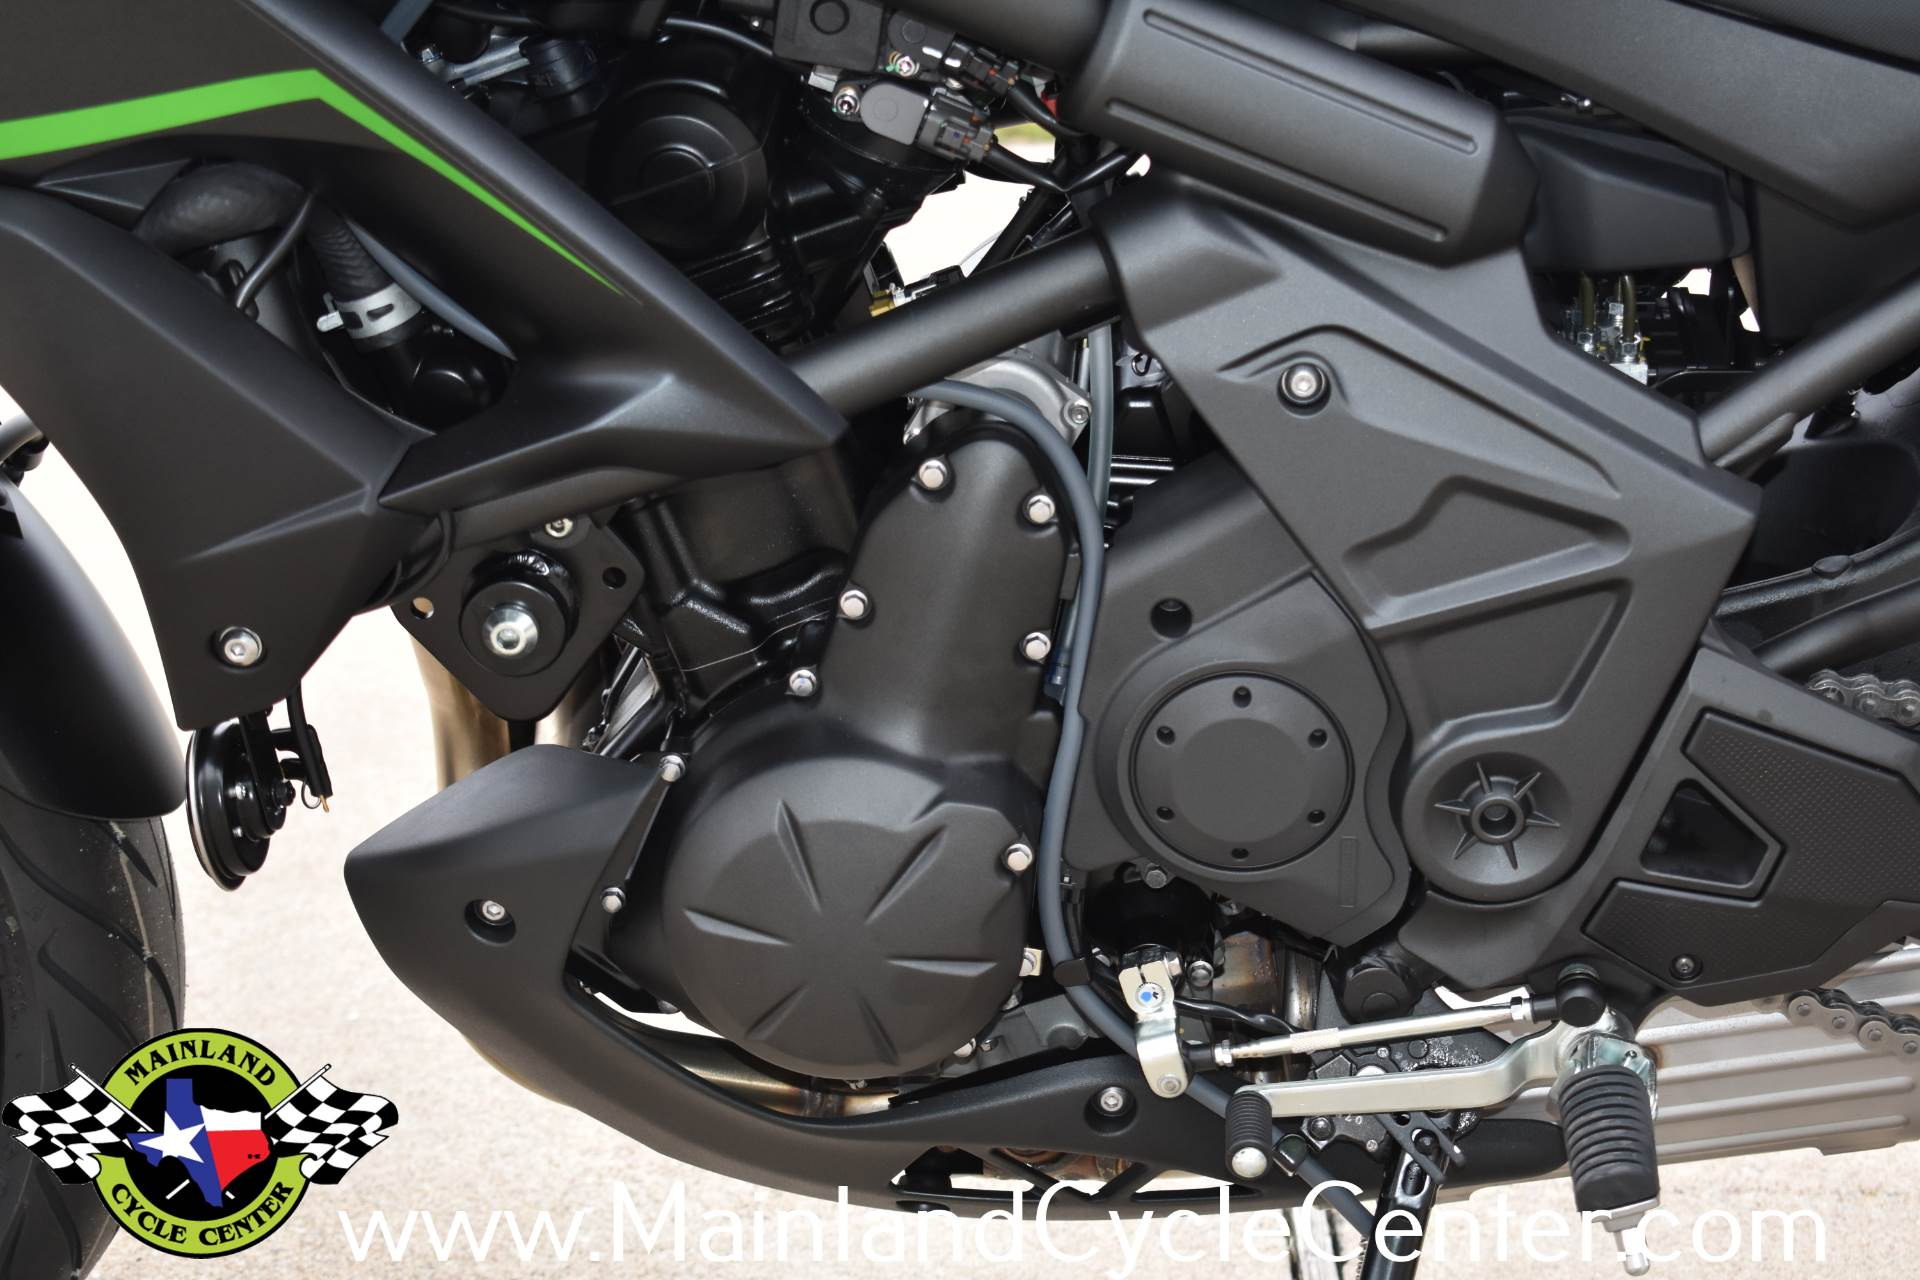 2019 Kawasaki Versys 650 LT in La Marque, Texas - Photo 15